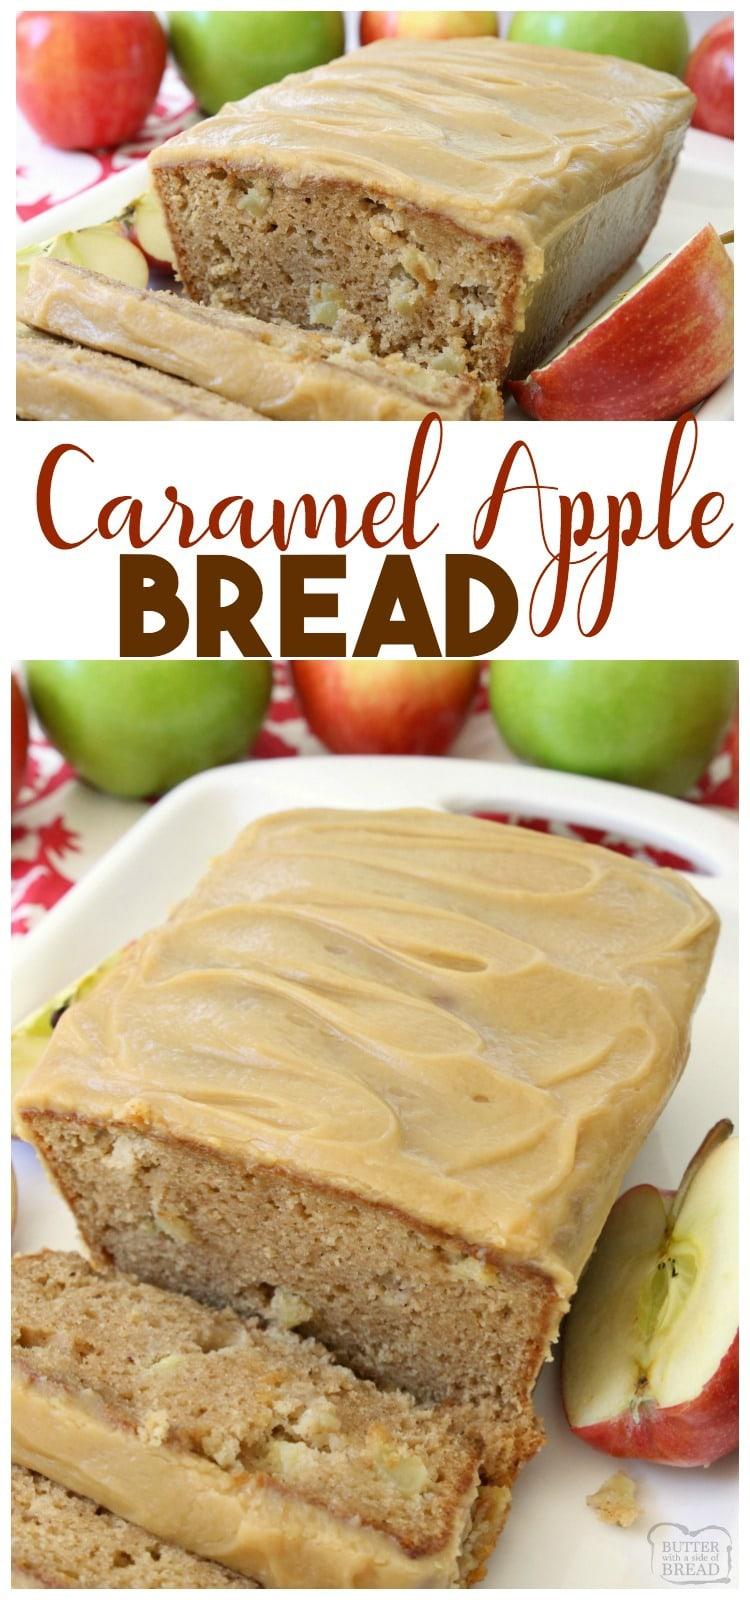 Caramel Apple Bread bursting with fresh apple, spiced with cinnamon and nutmeg, then topped with an incredibly delicious & easy to make caramel glaze. Fantastic apple quick bread recipe that everyone goes crazy over!